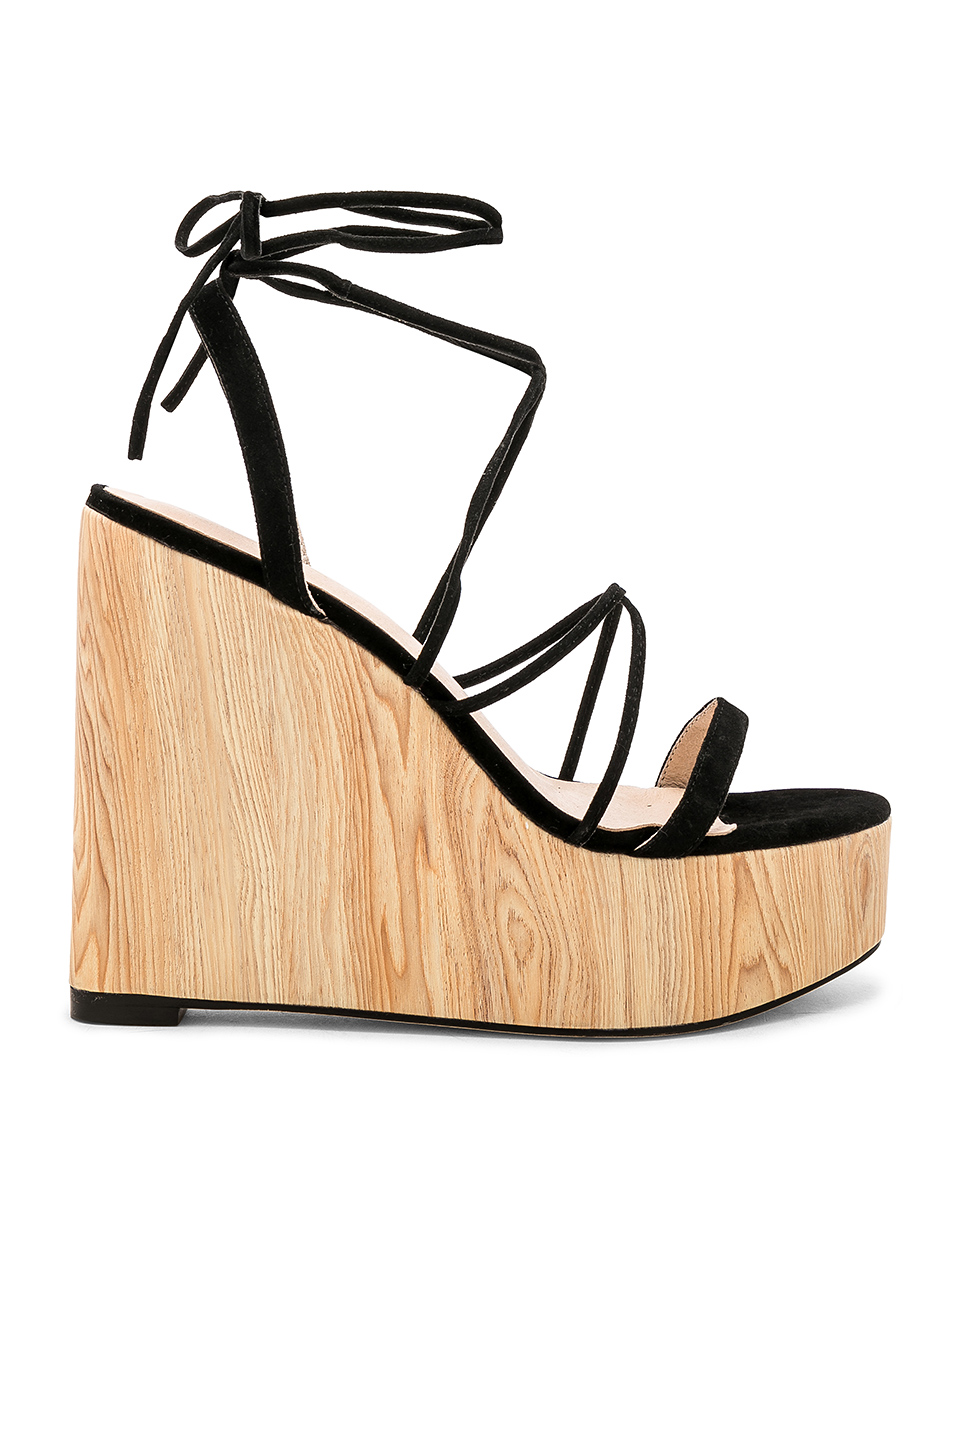 RAYE Wren Wedge in Black